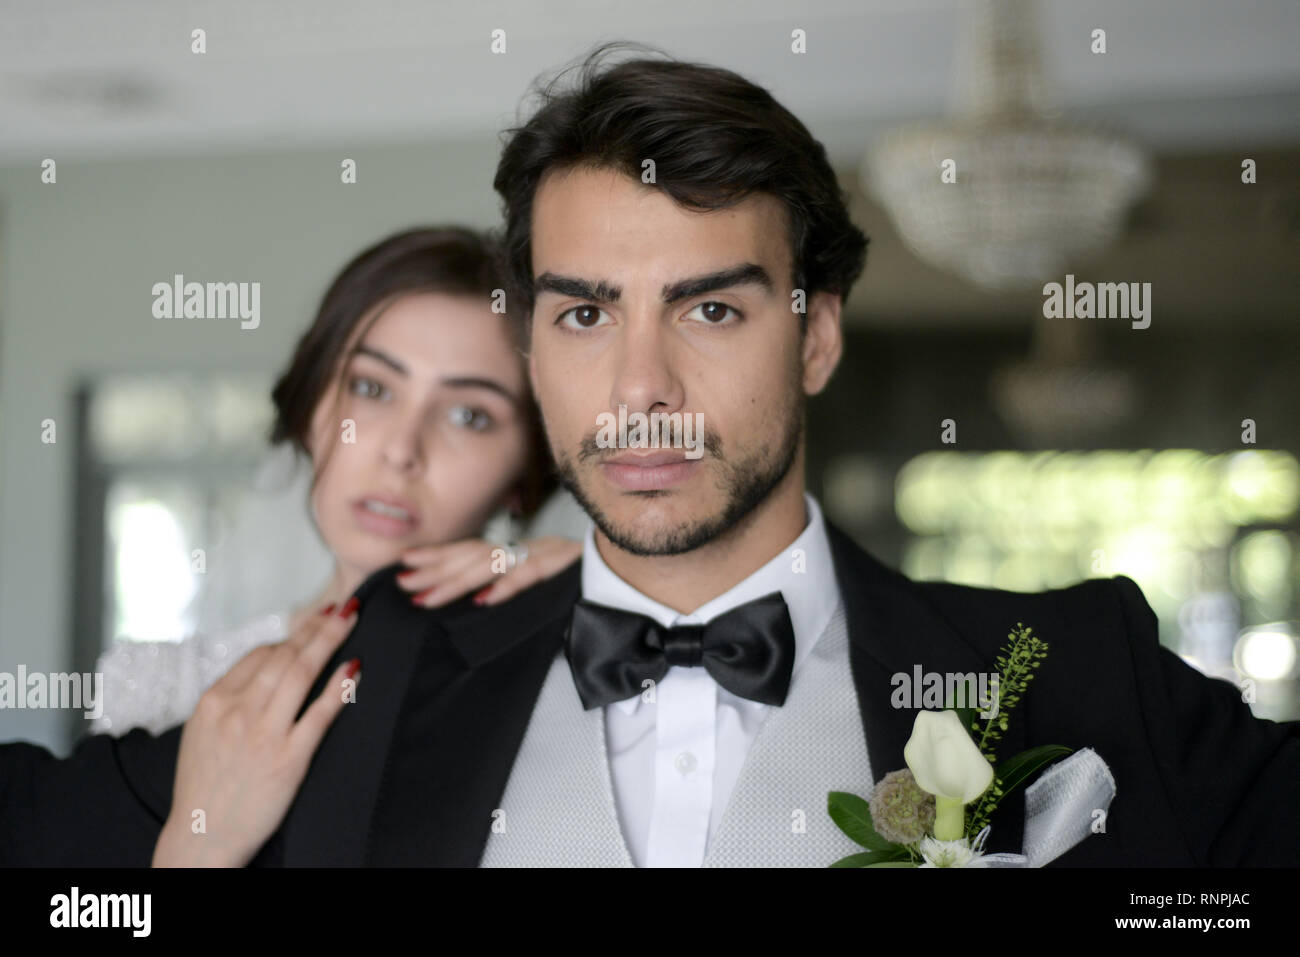 A young pensive couple have a traditional English White Wedding, they are both dark haired and good looking but seem unhappy - Stock Image